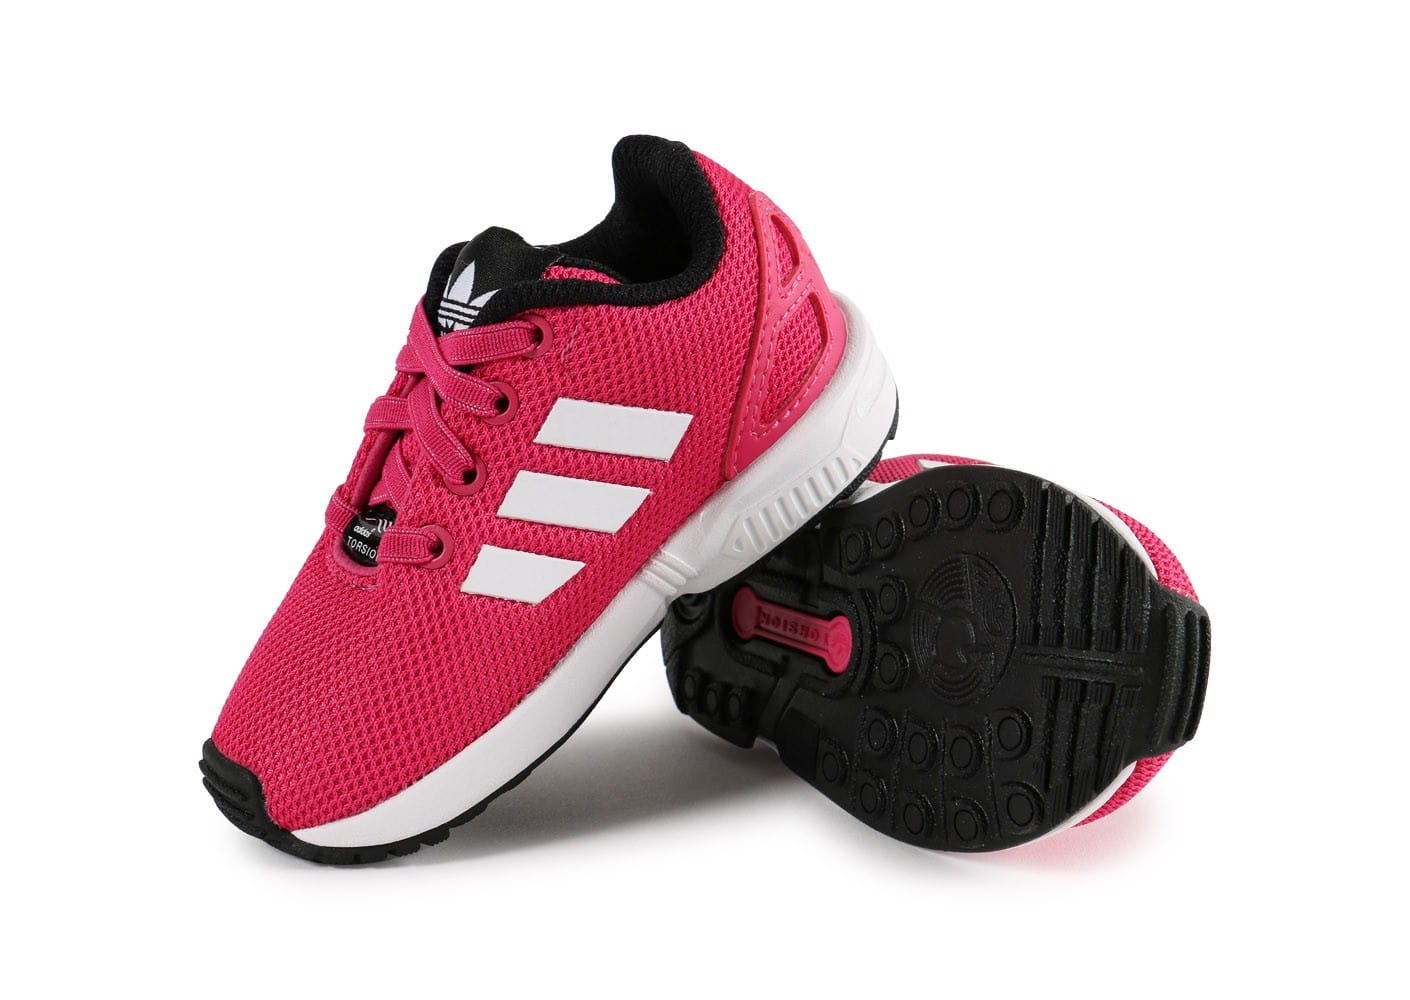 Chaussures Adidas ZX Flux Pointure 25 roses enfant v5ZvH9G6ff